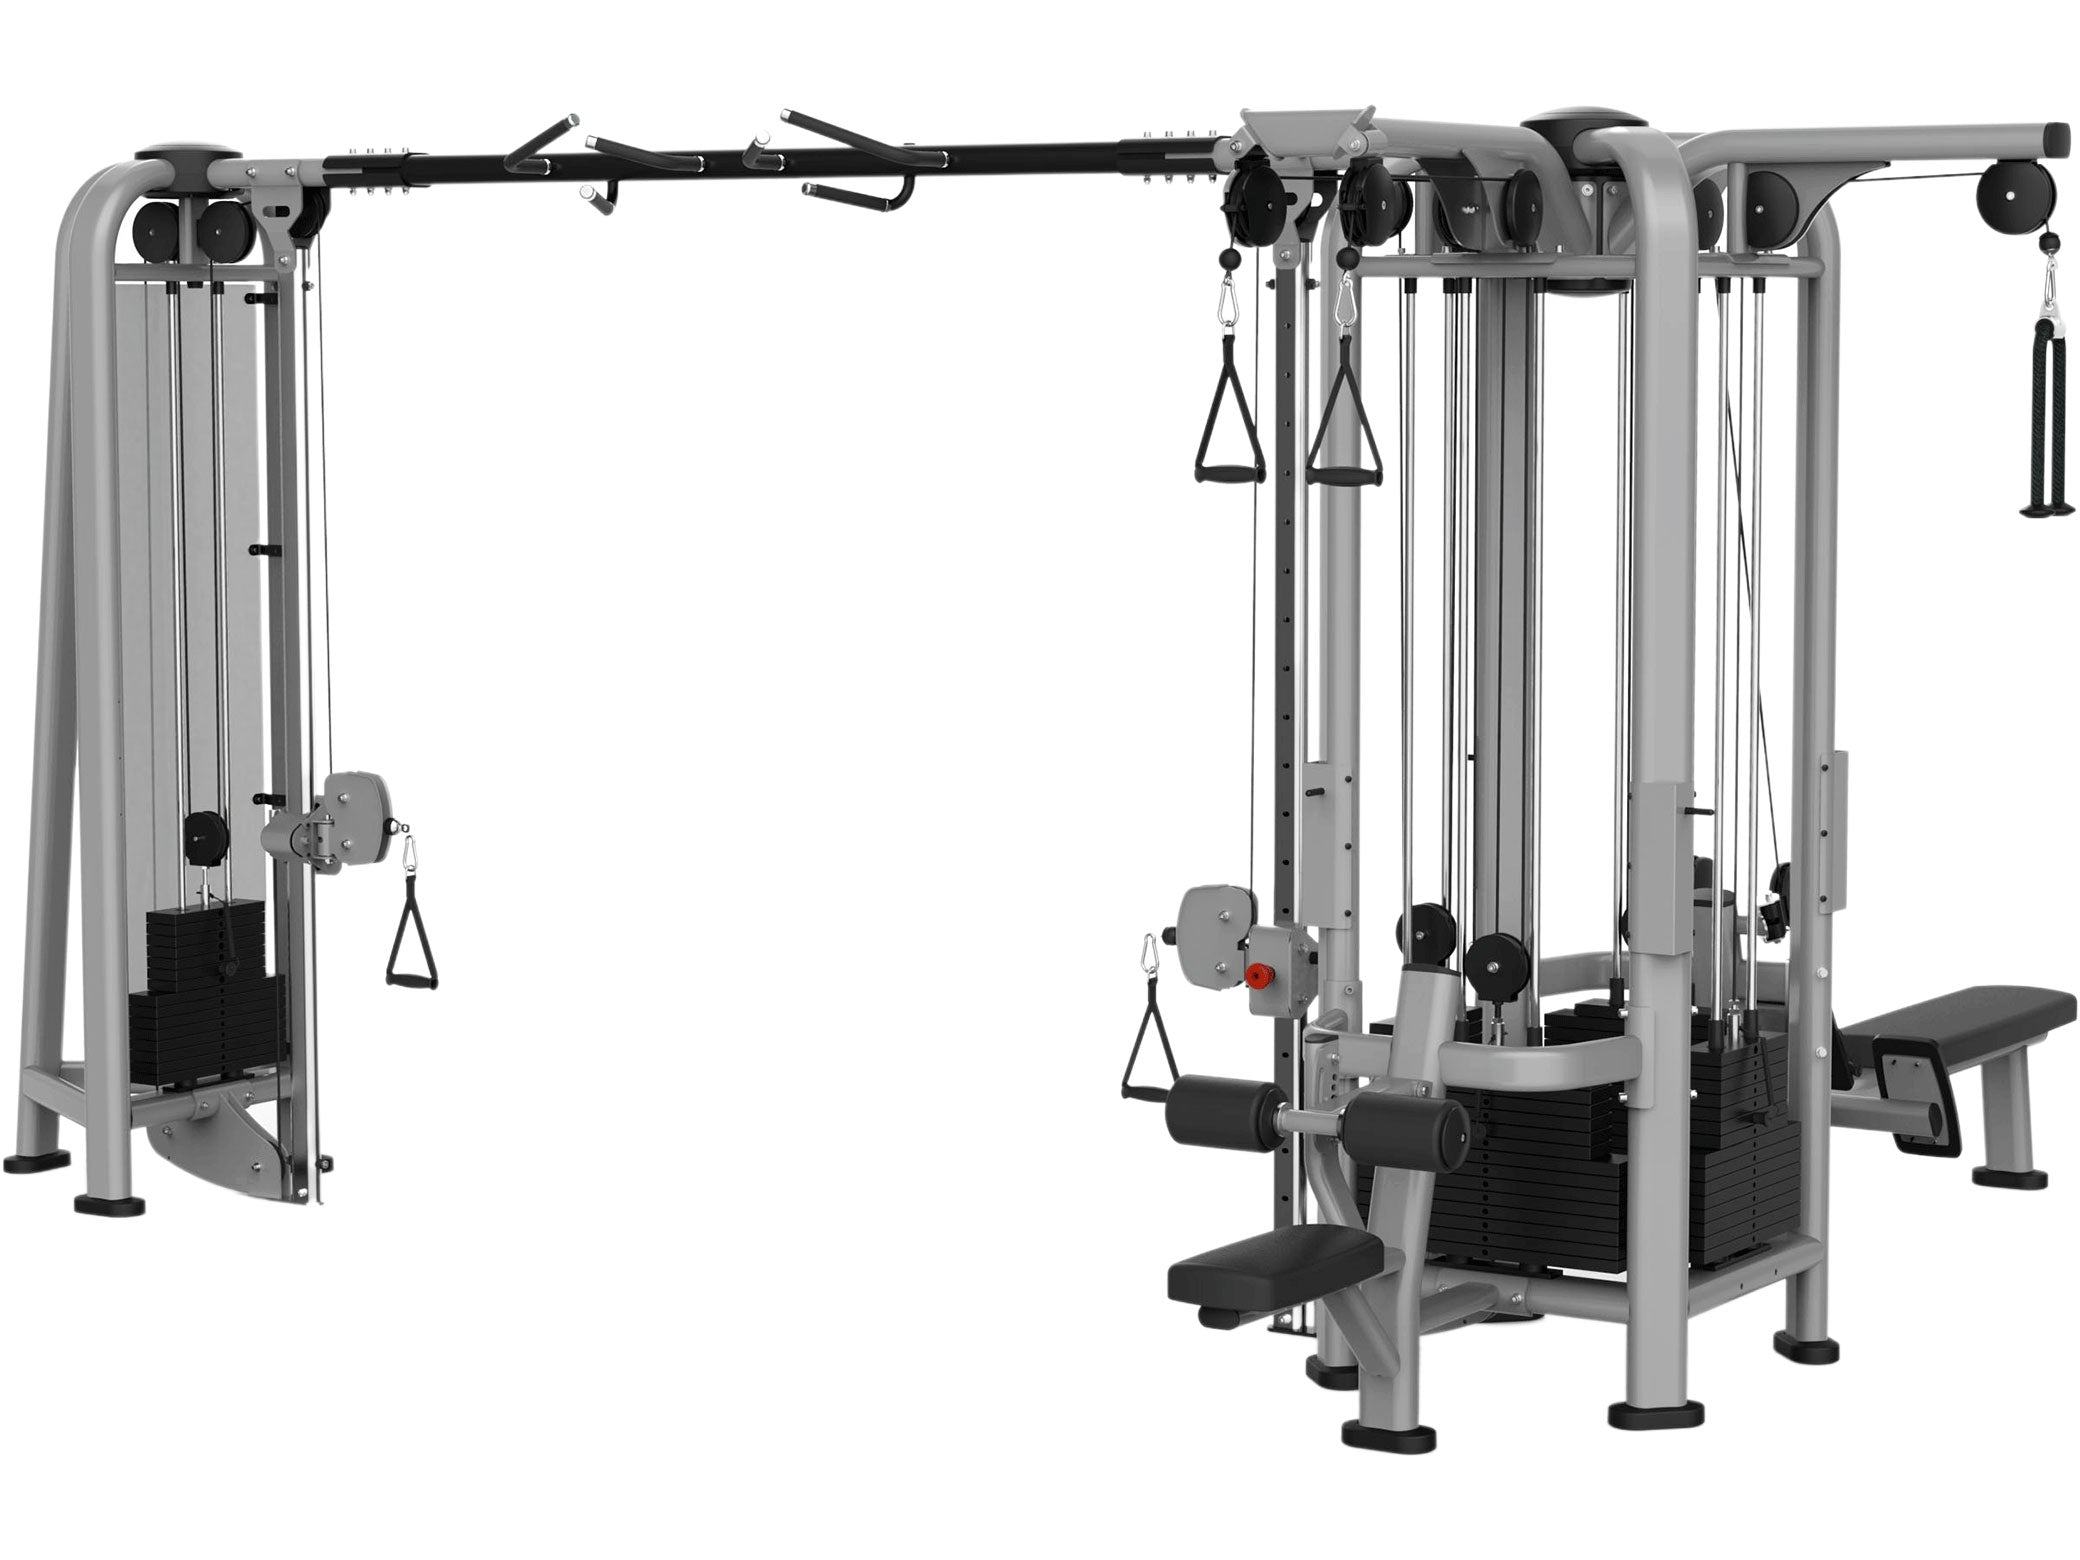 Factory photo of a New Sportgear 5 stack Multi Station with Dual Pulley Pulldown and Row